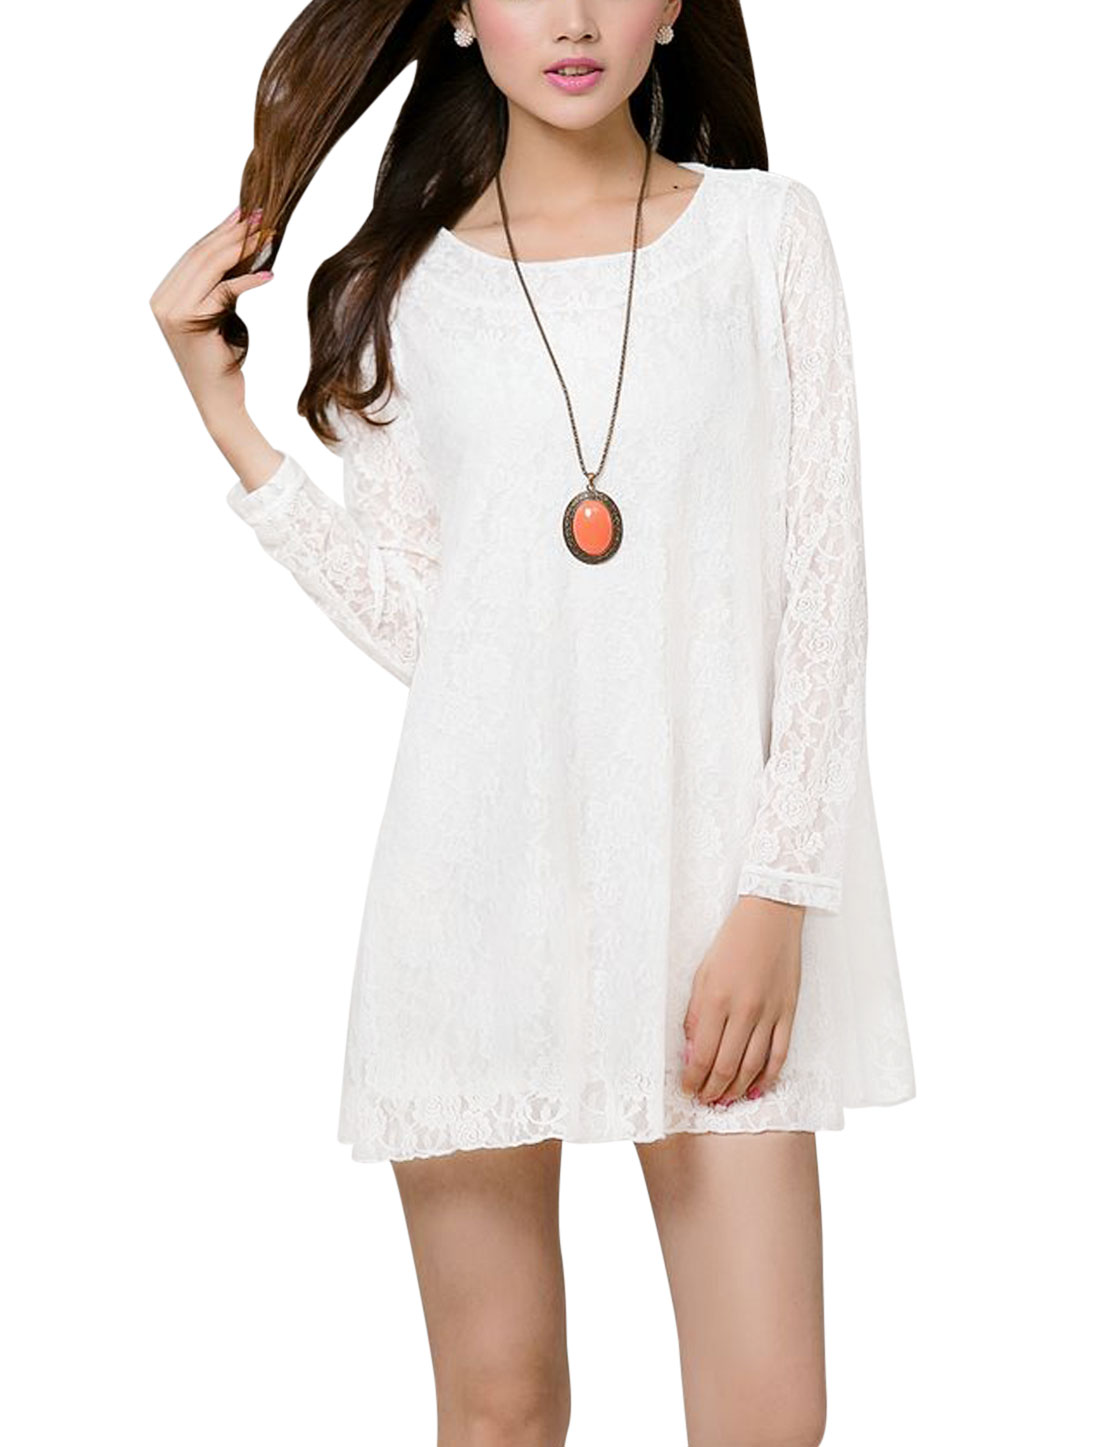 Spring Lady Scoop Neck Lining Casual Lace Tunic White XS